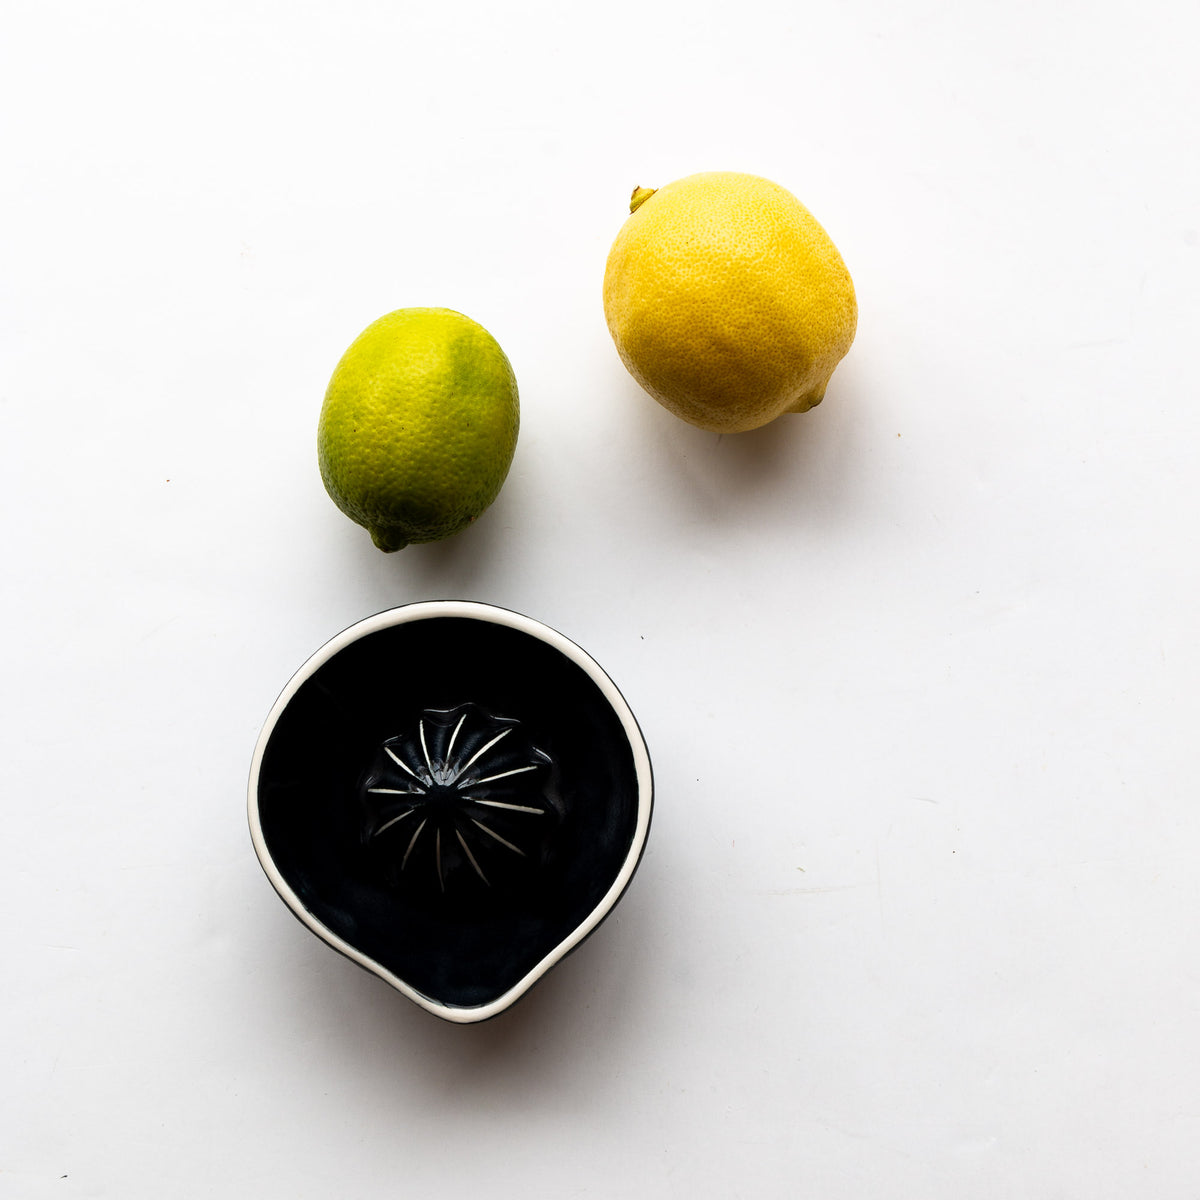 Top View With Citrus - Black & White Handcrafted Small Porcelain Citrus Juicer - Sold by Chic & Basta